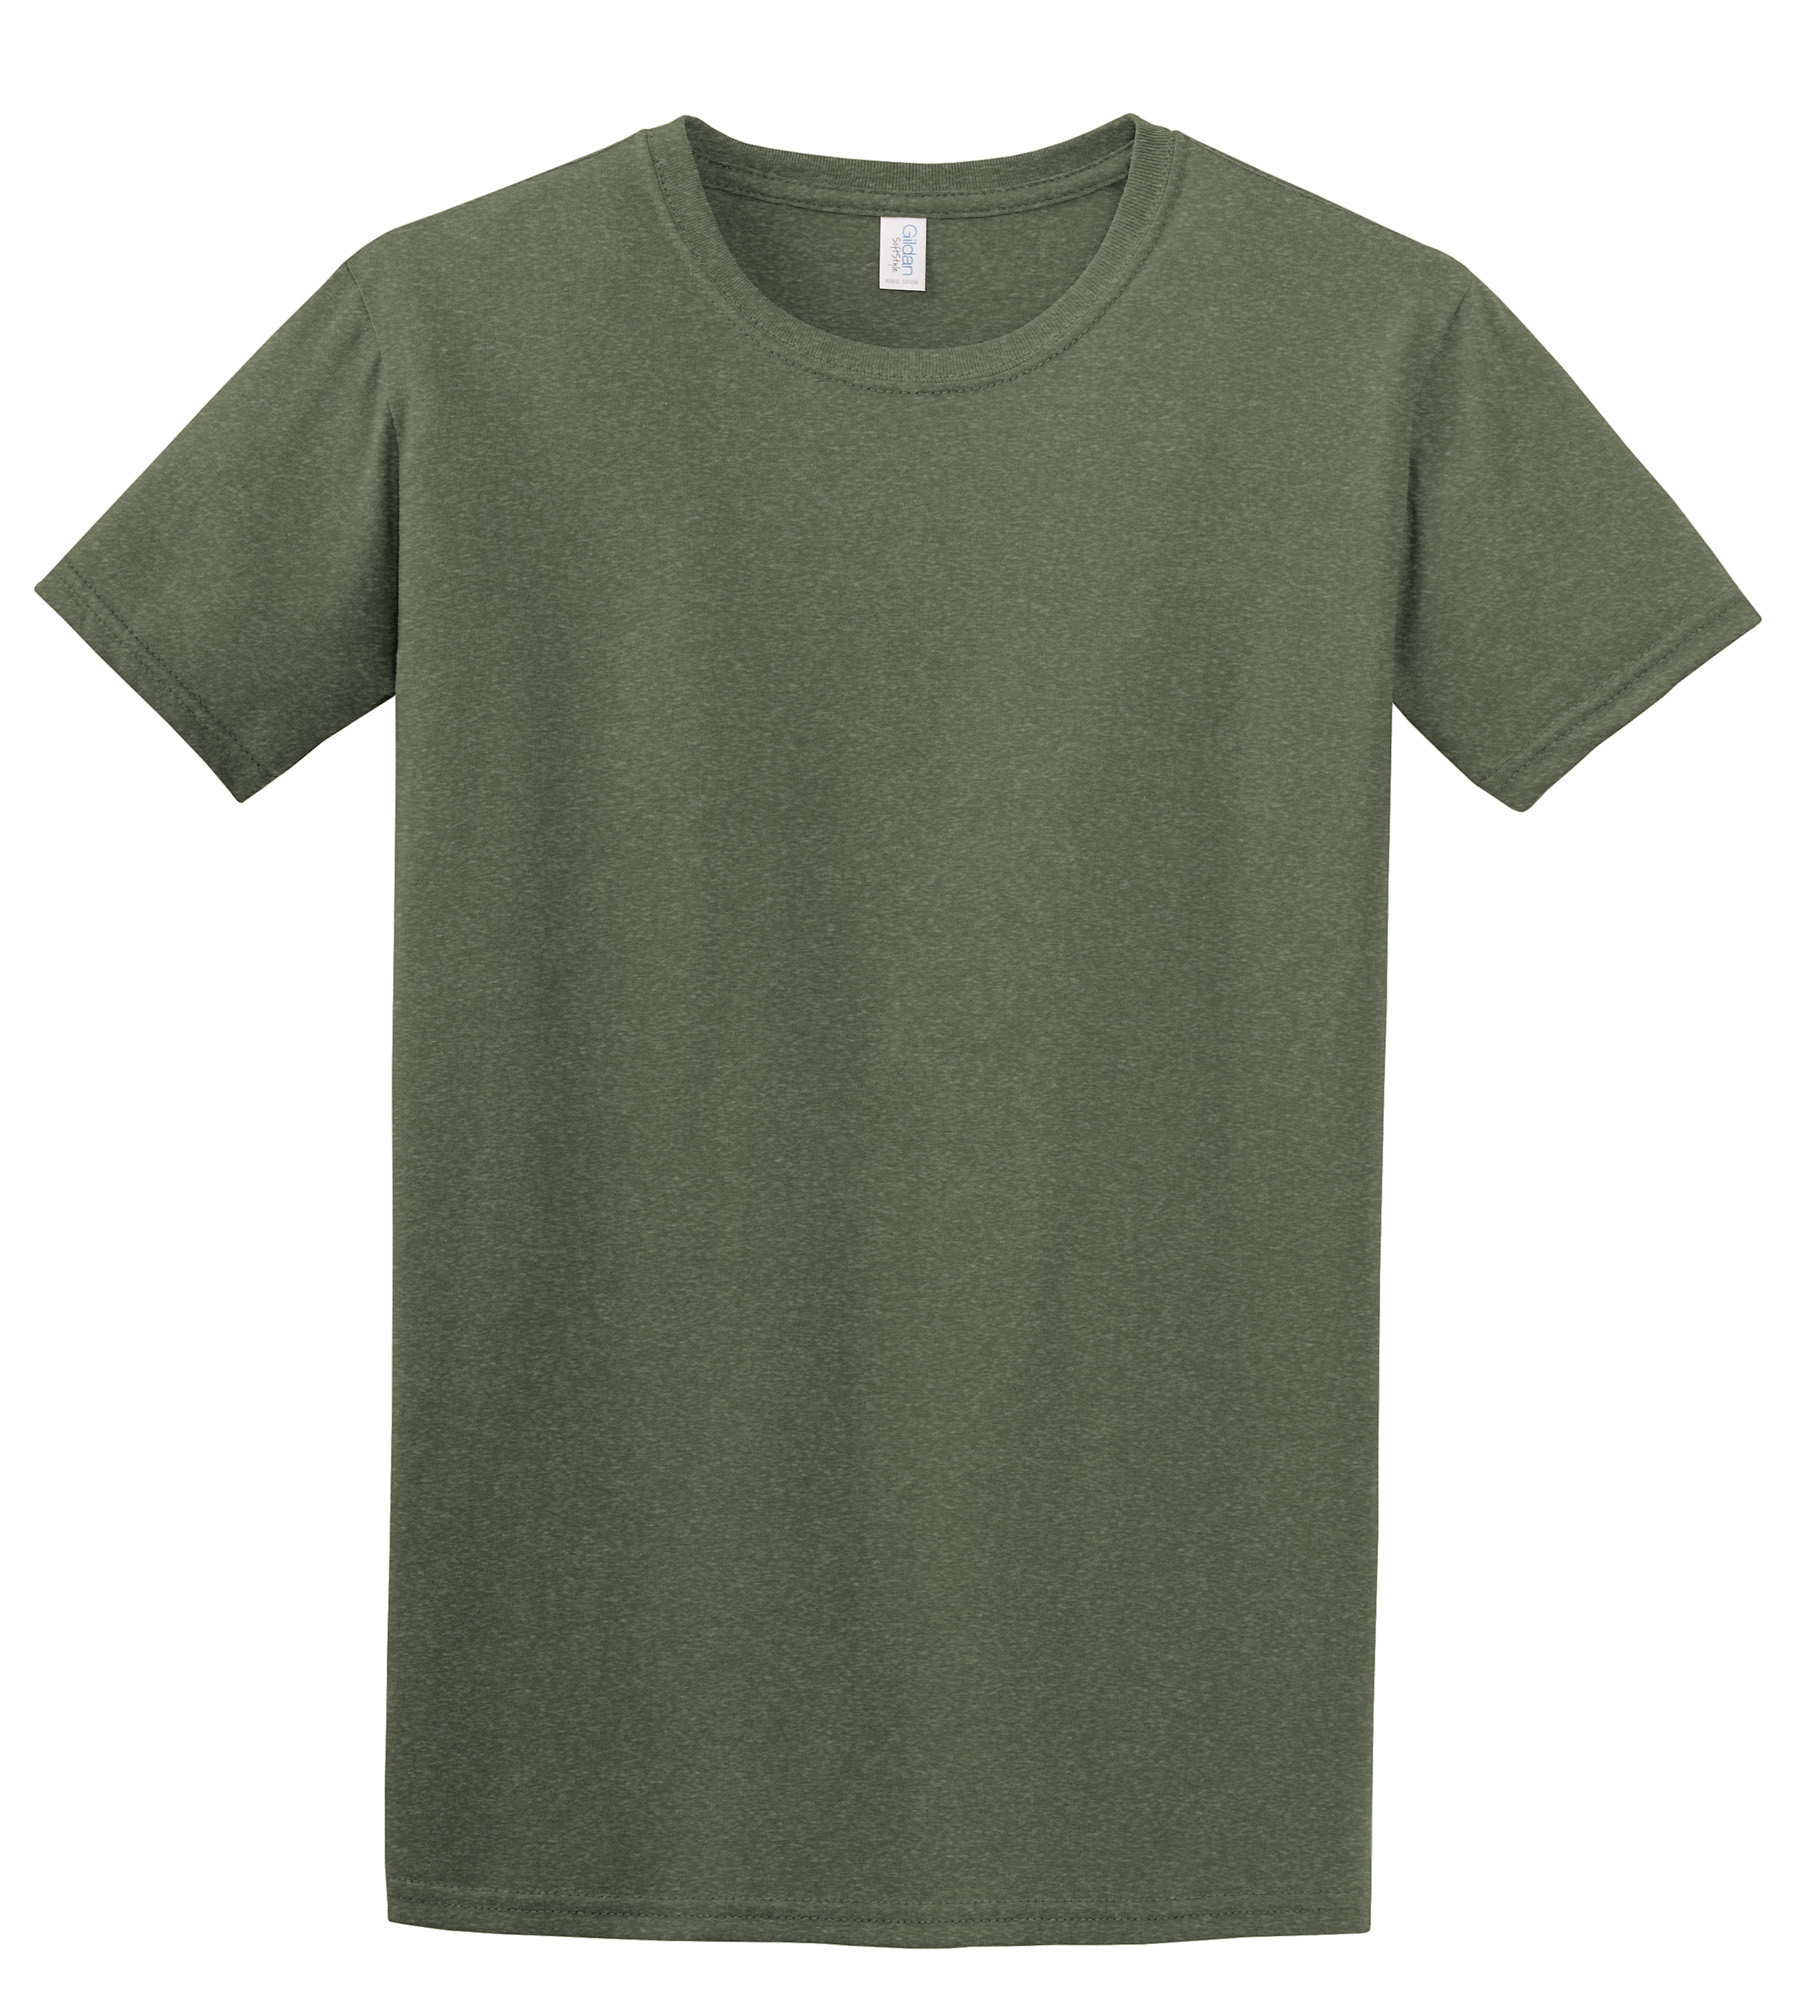 Gildan softstyle t shirt 64000 supply theory for Gildan camouflage t shirts